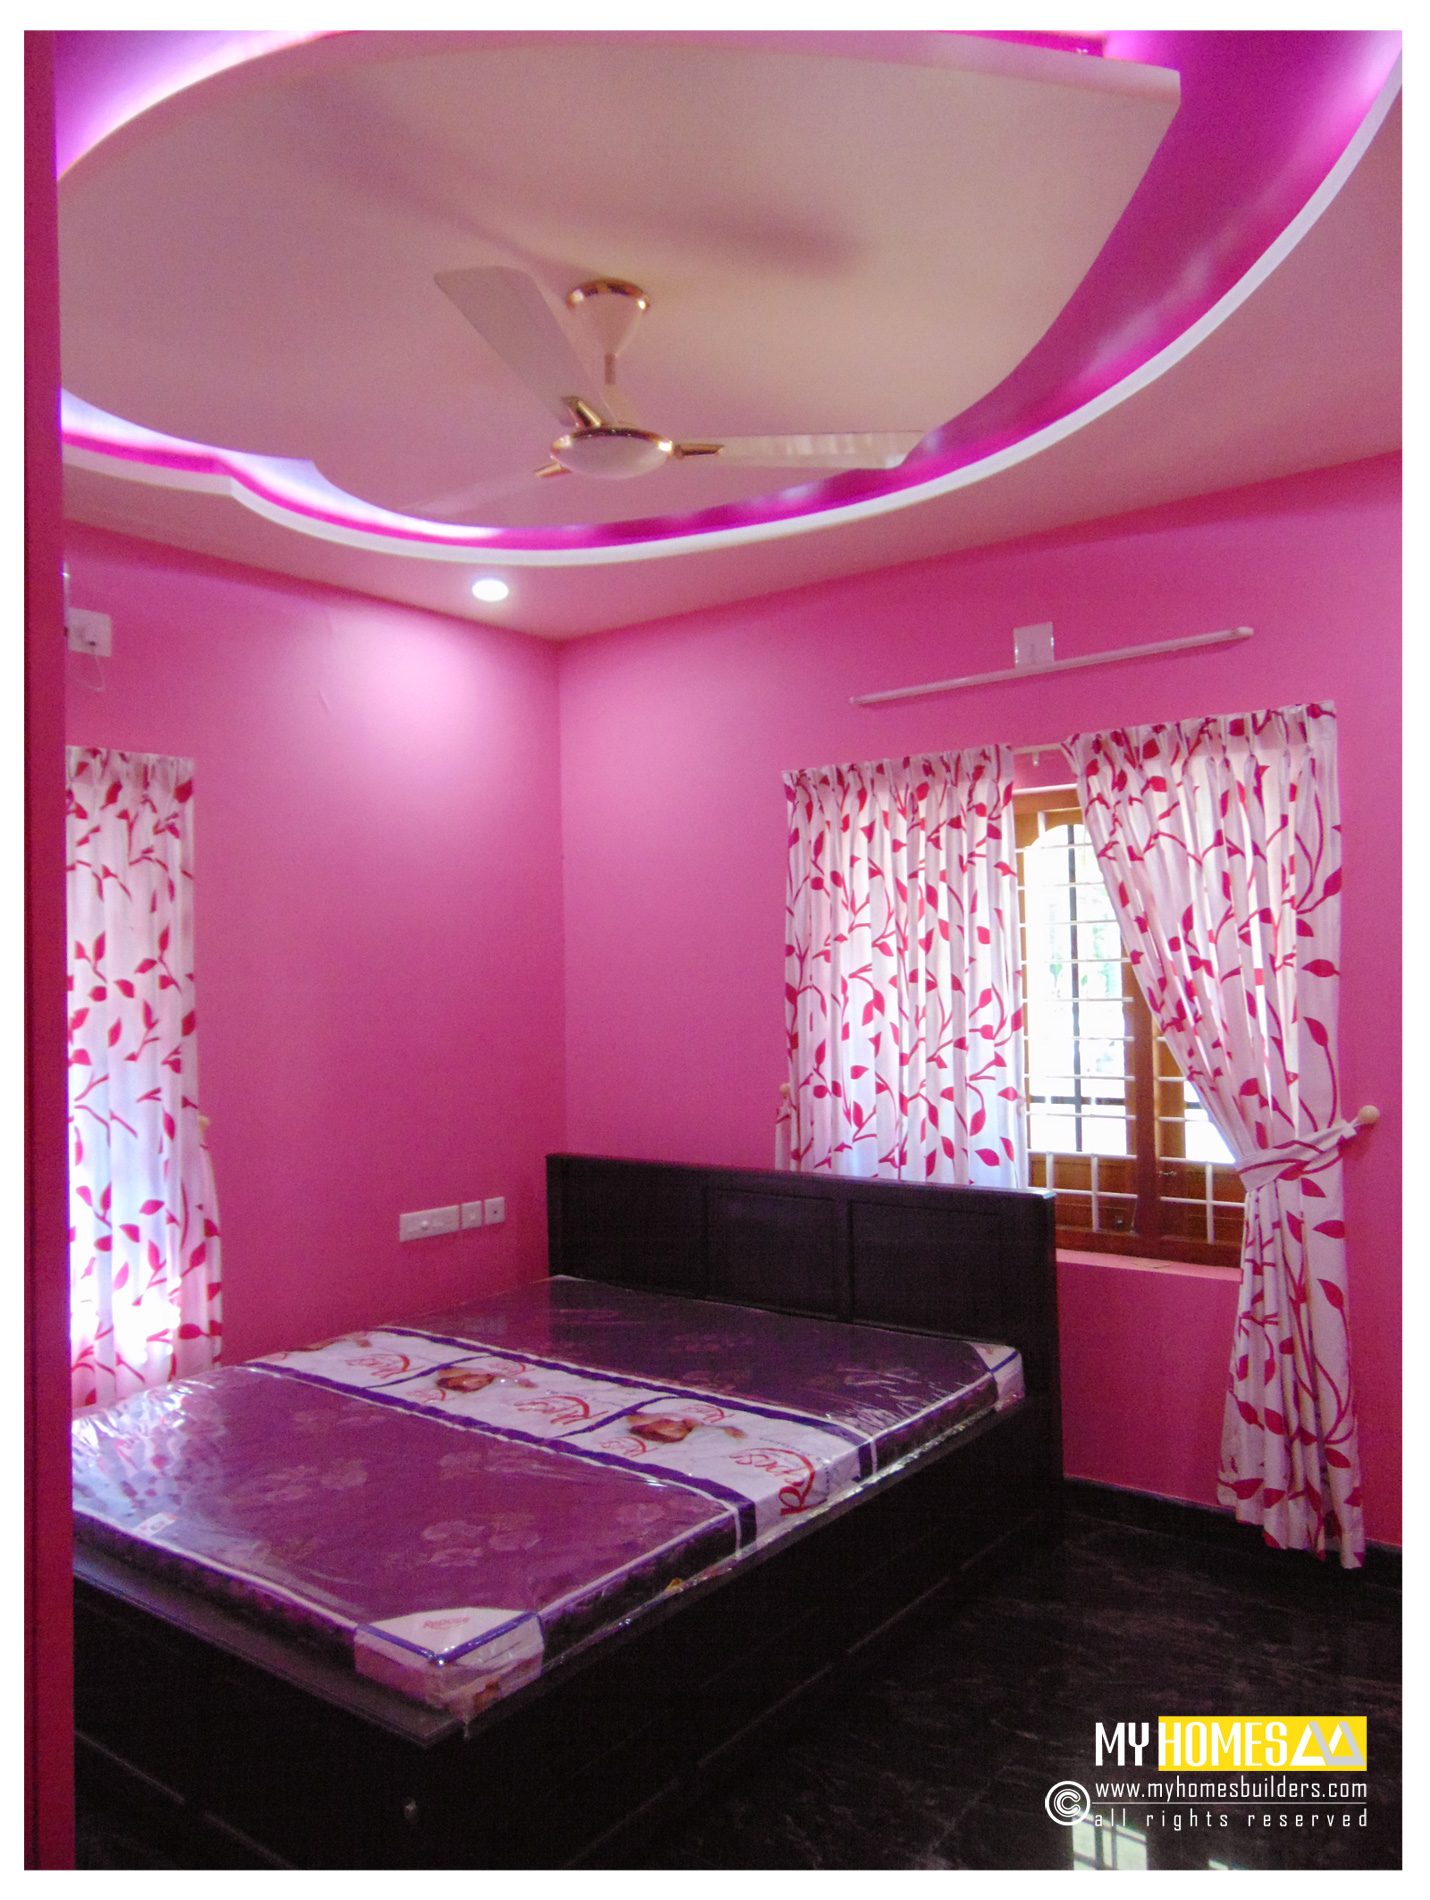 Simple style kerala bedroom designs ideas for home interior - House decoration bedroom ...